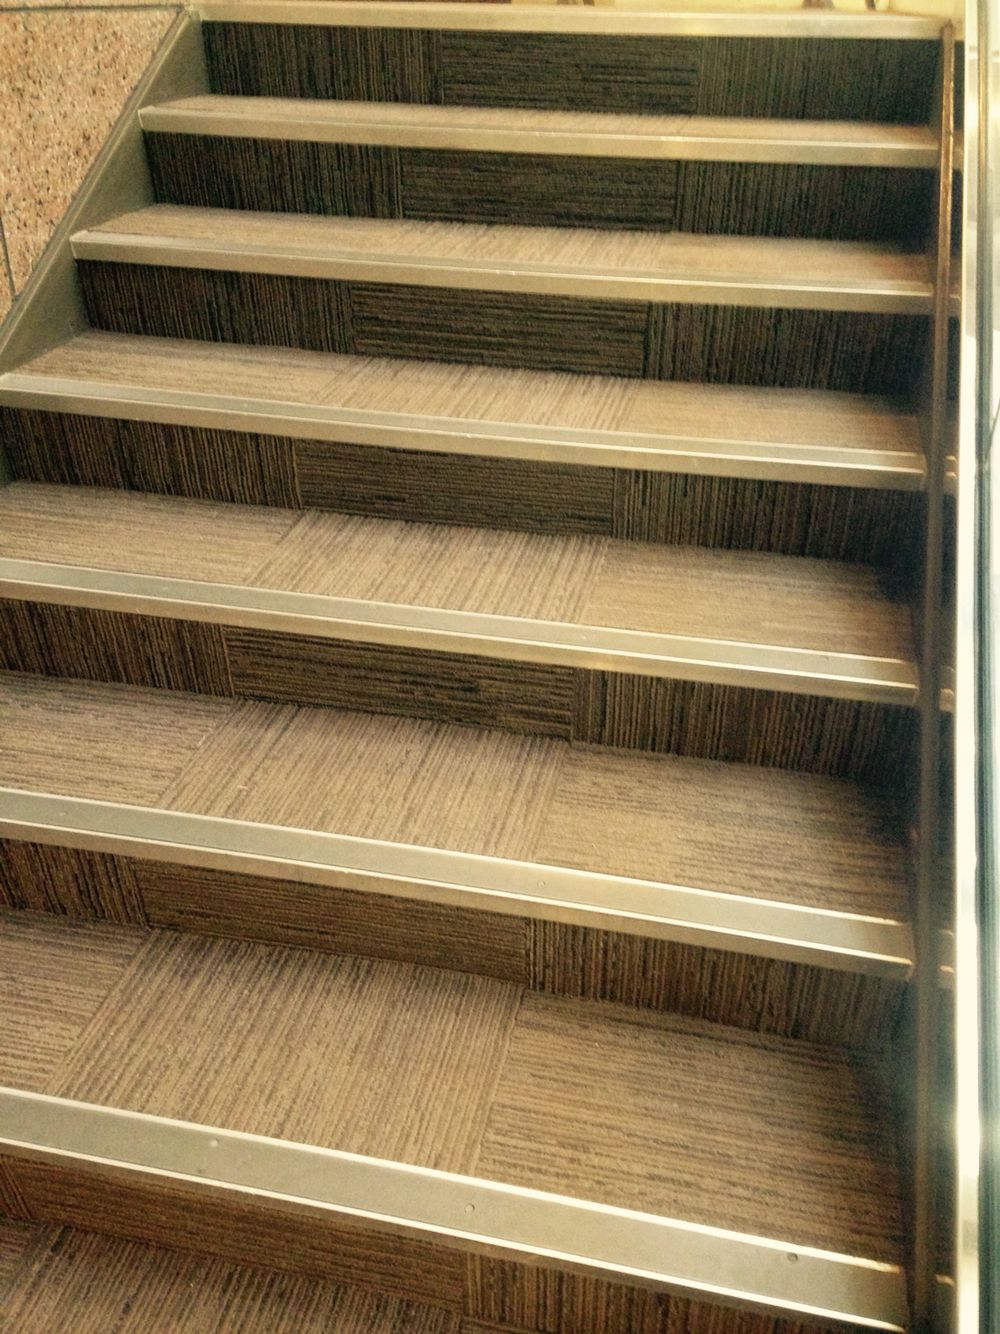 Interface Carpet Tile With Stair Nosing At Our